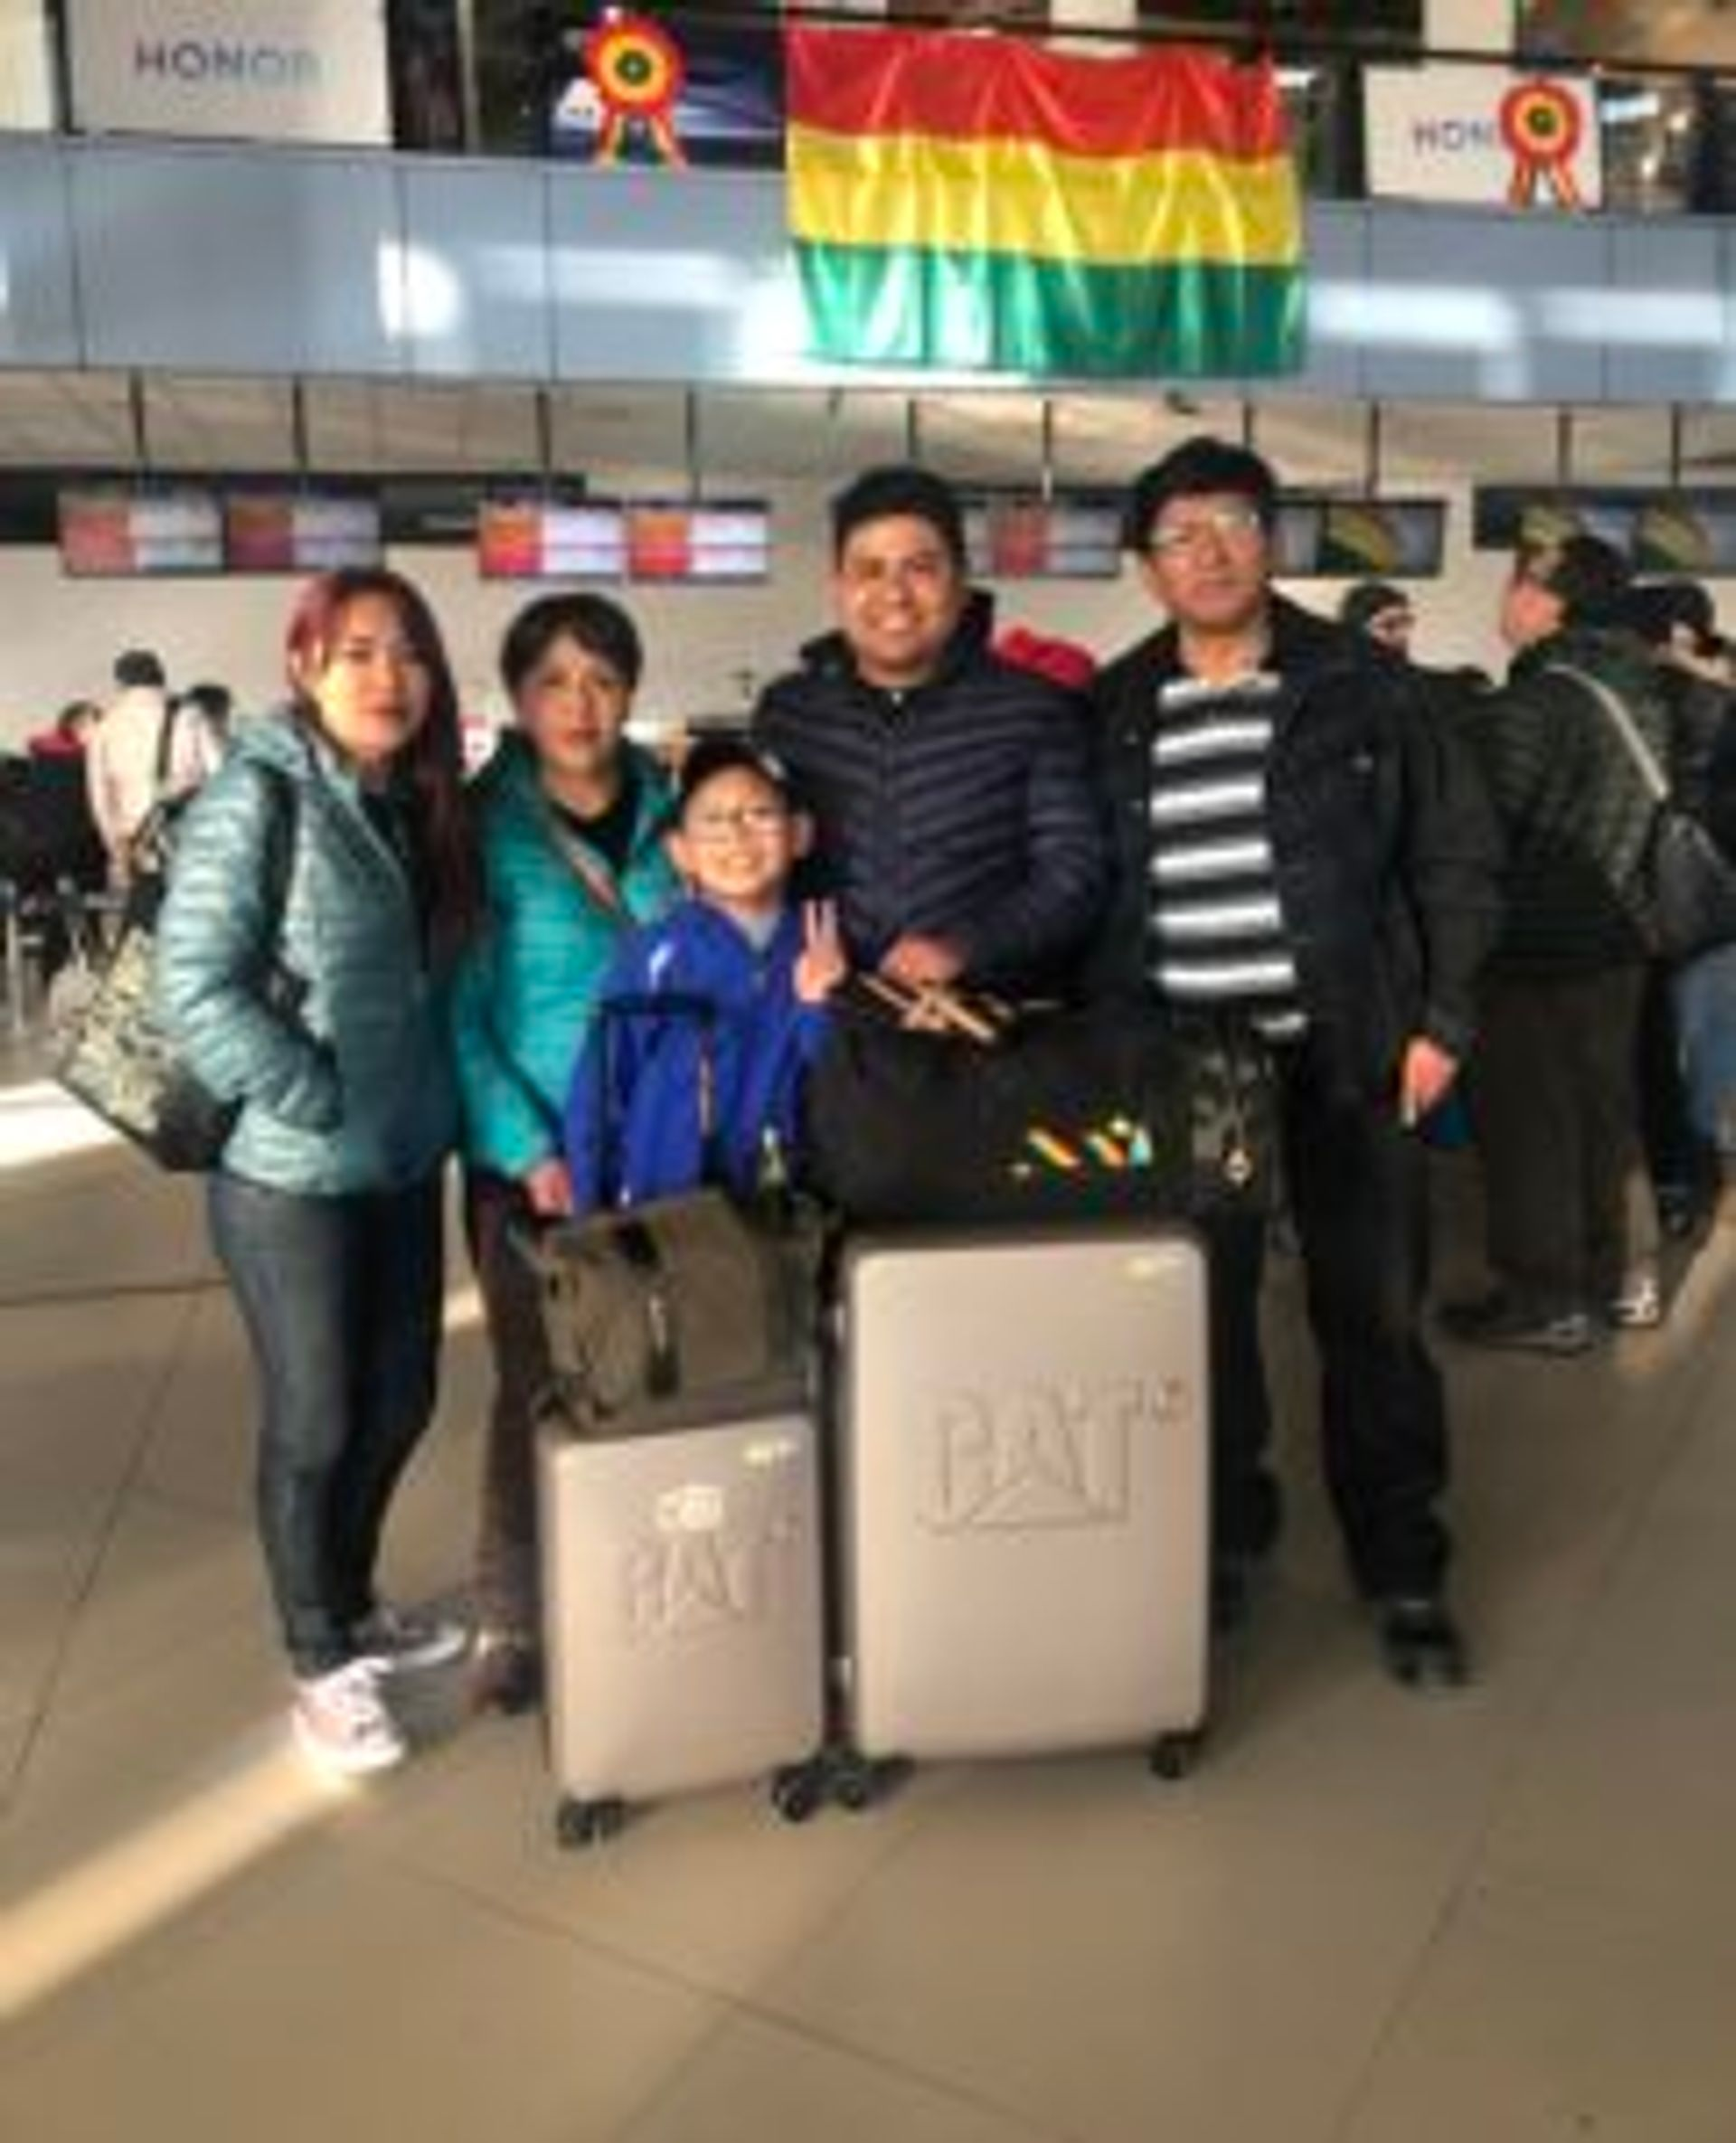 A family poses for a photo at an airport.